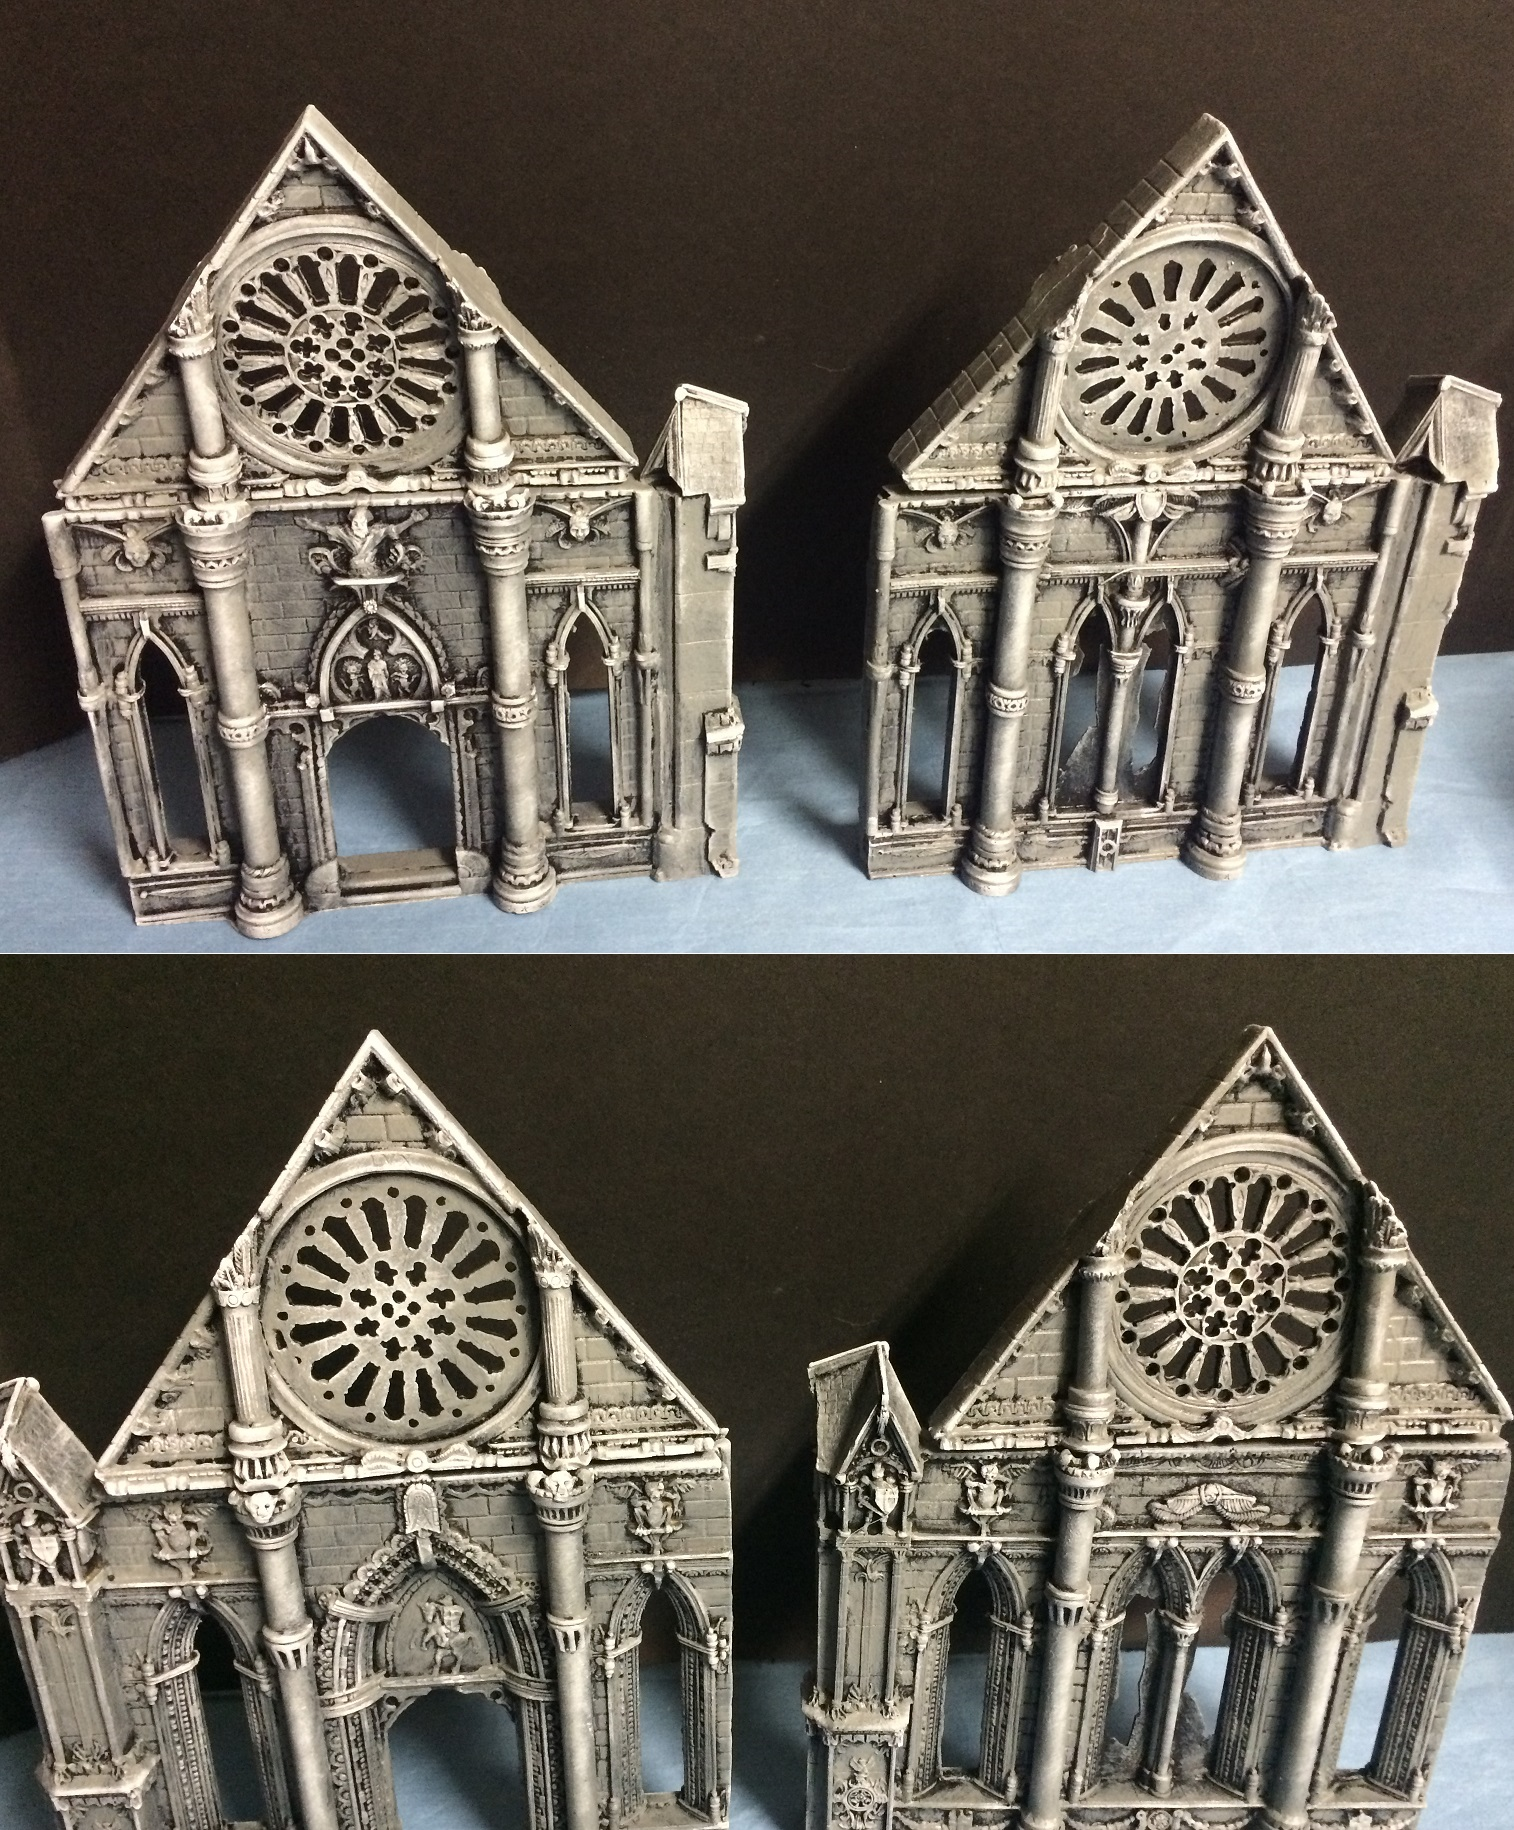 Armorcast cathedrals building ruins